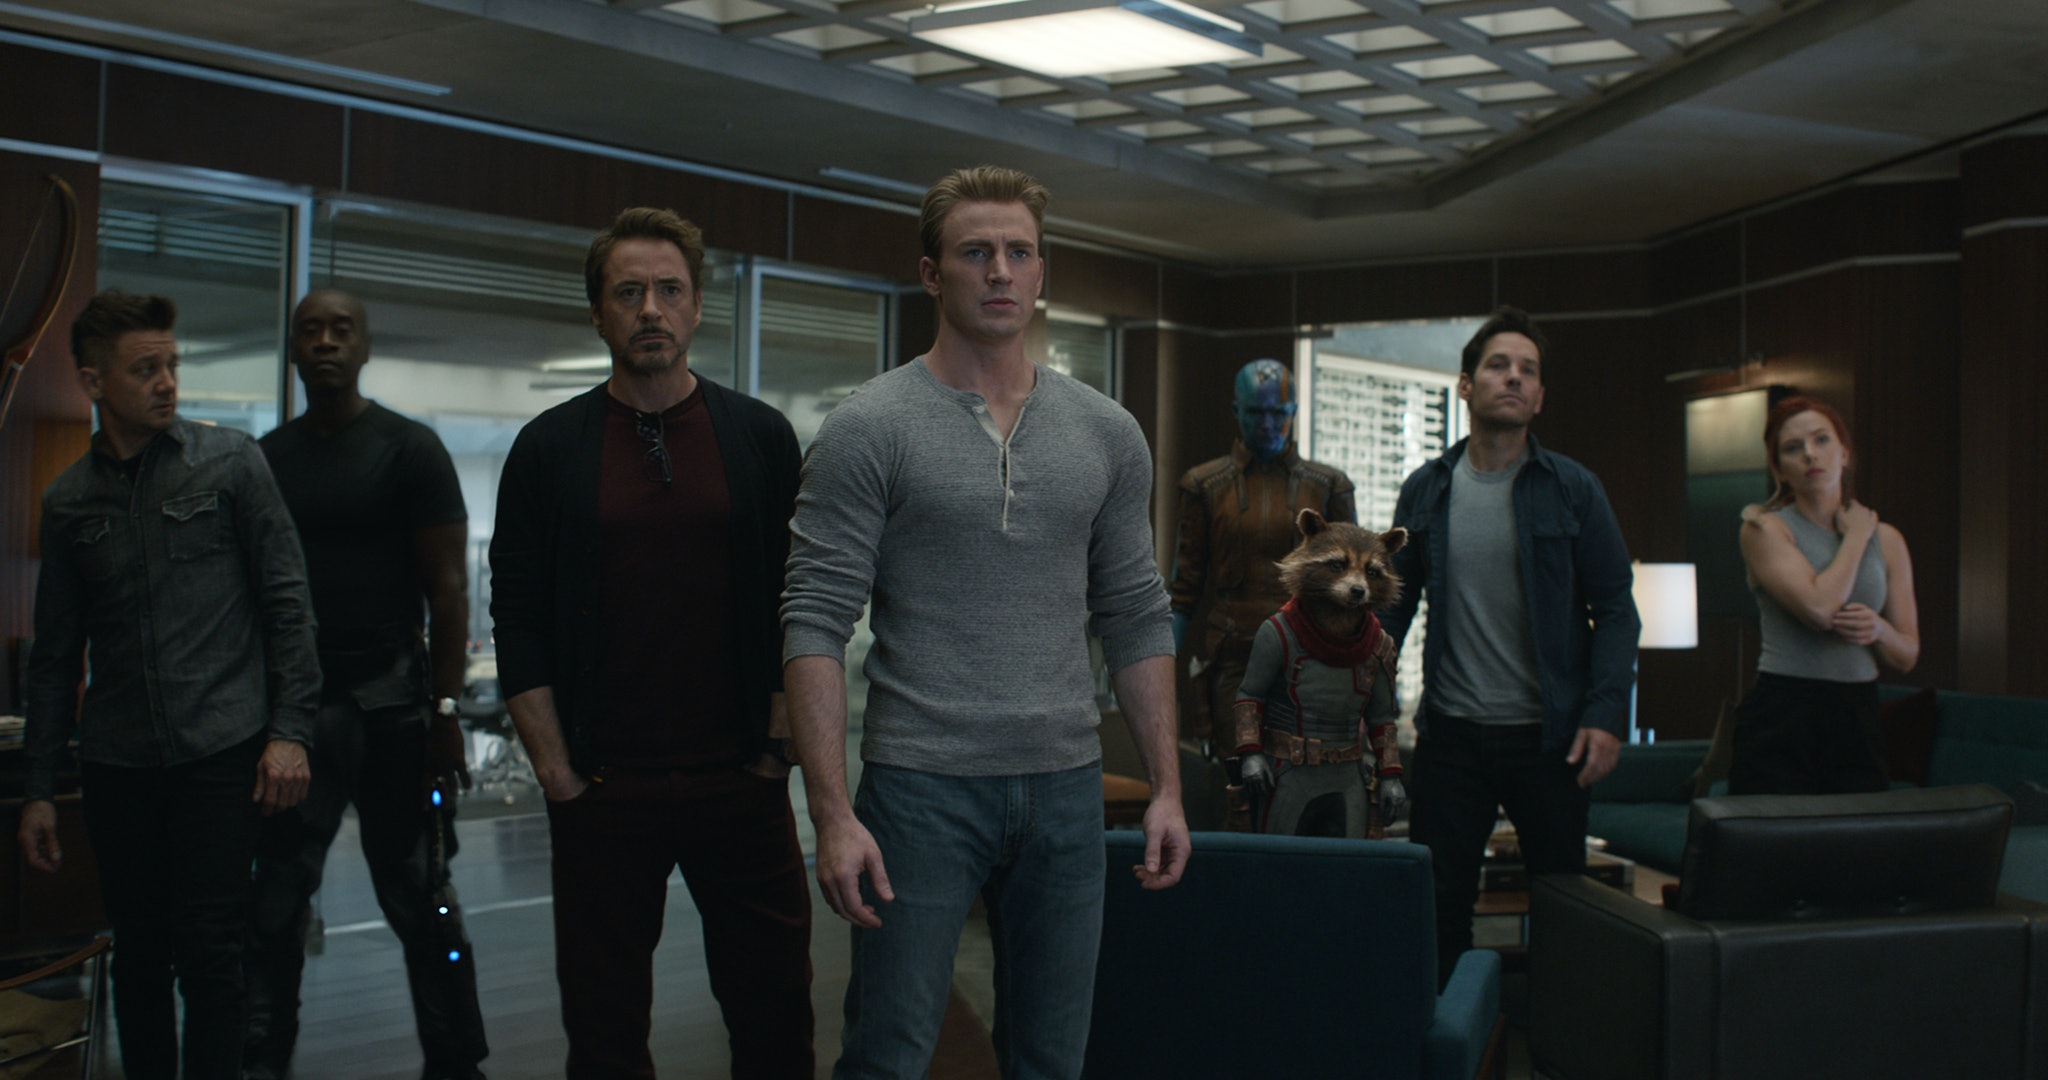 How Is The Snap Reversed In 'Endgame'? The Avengers Go On A